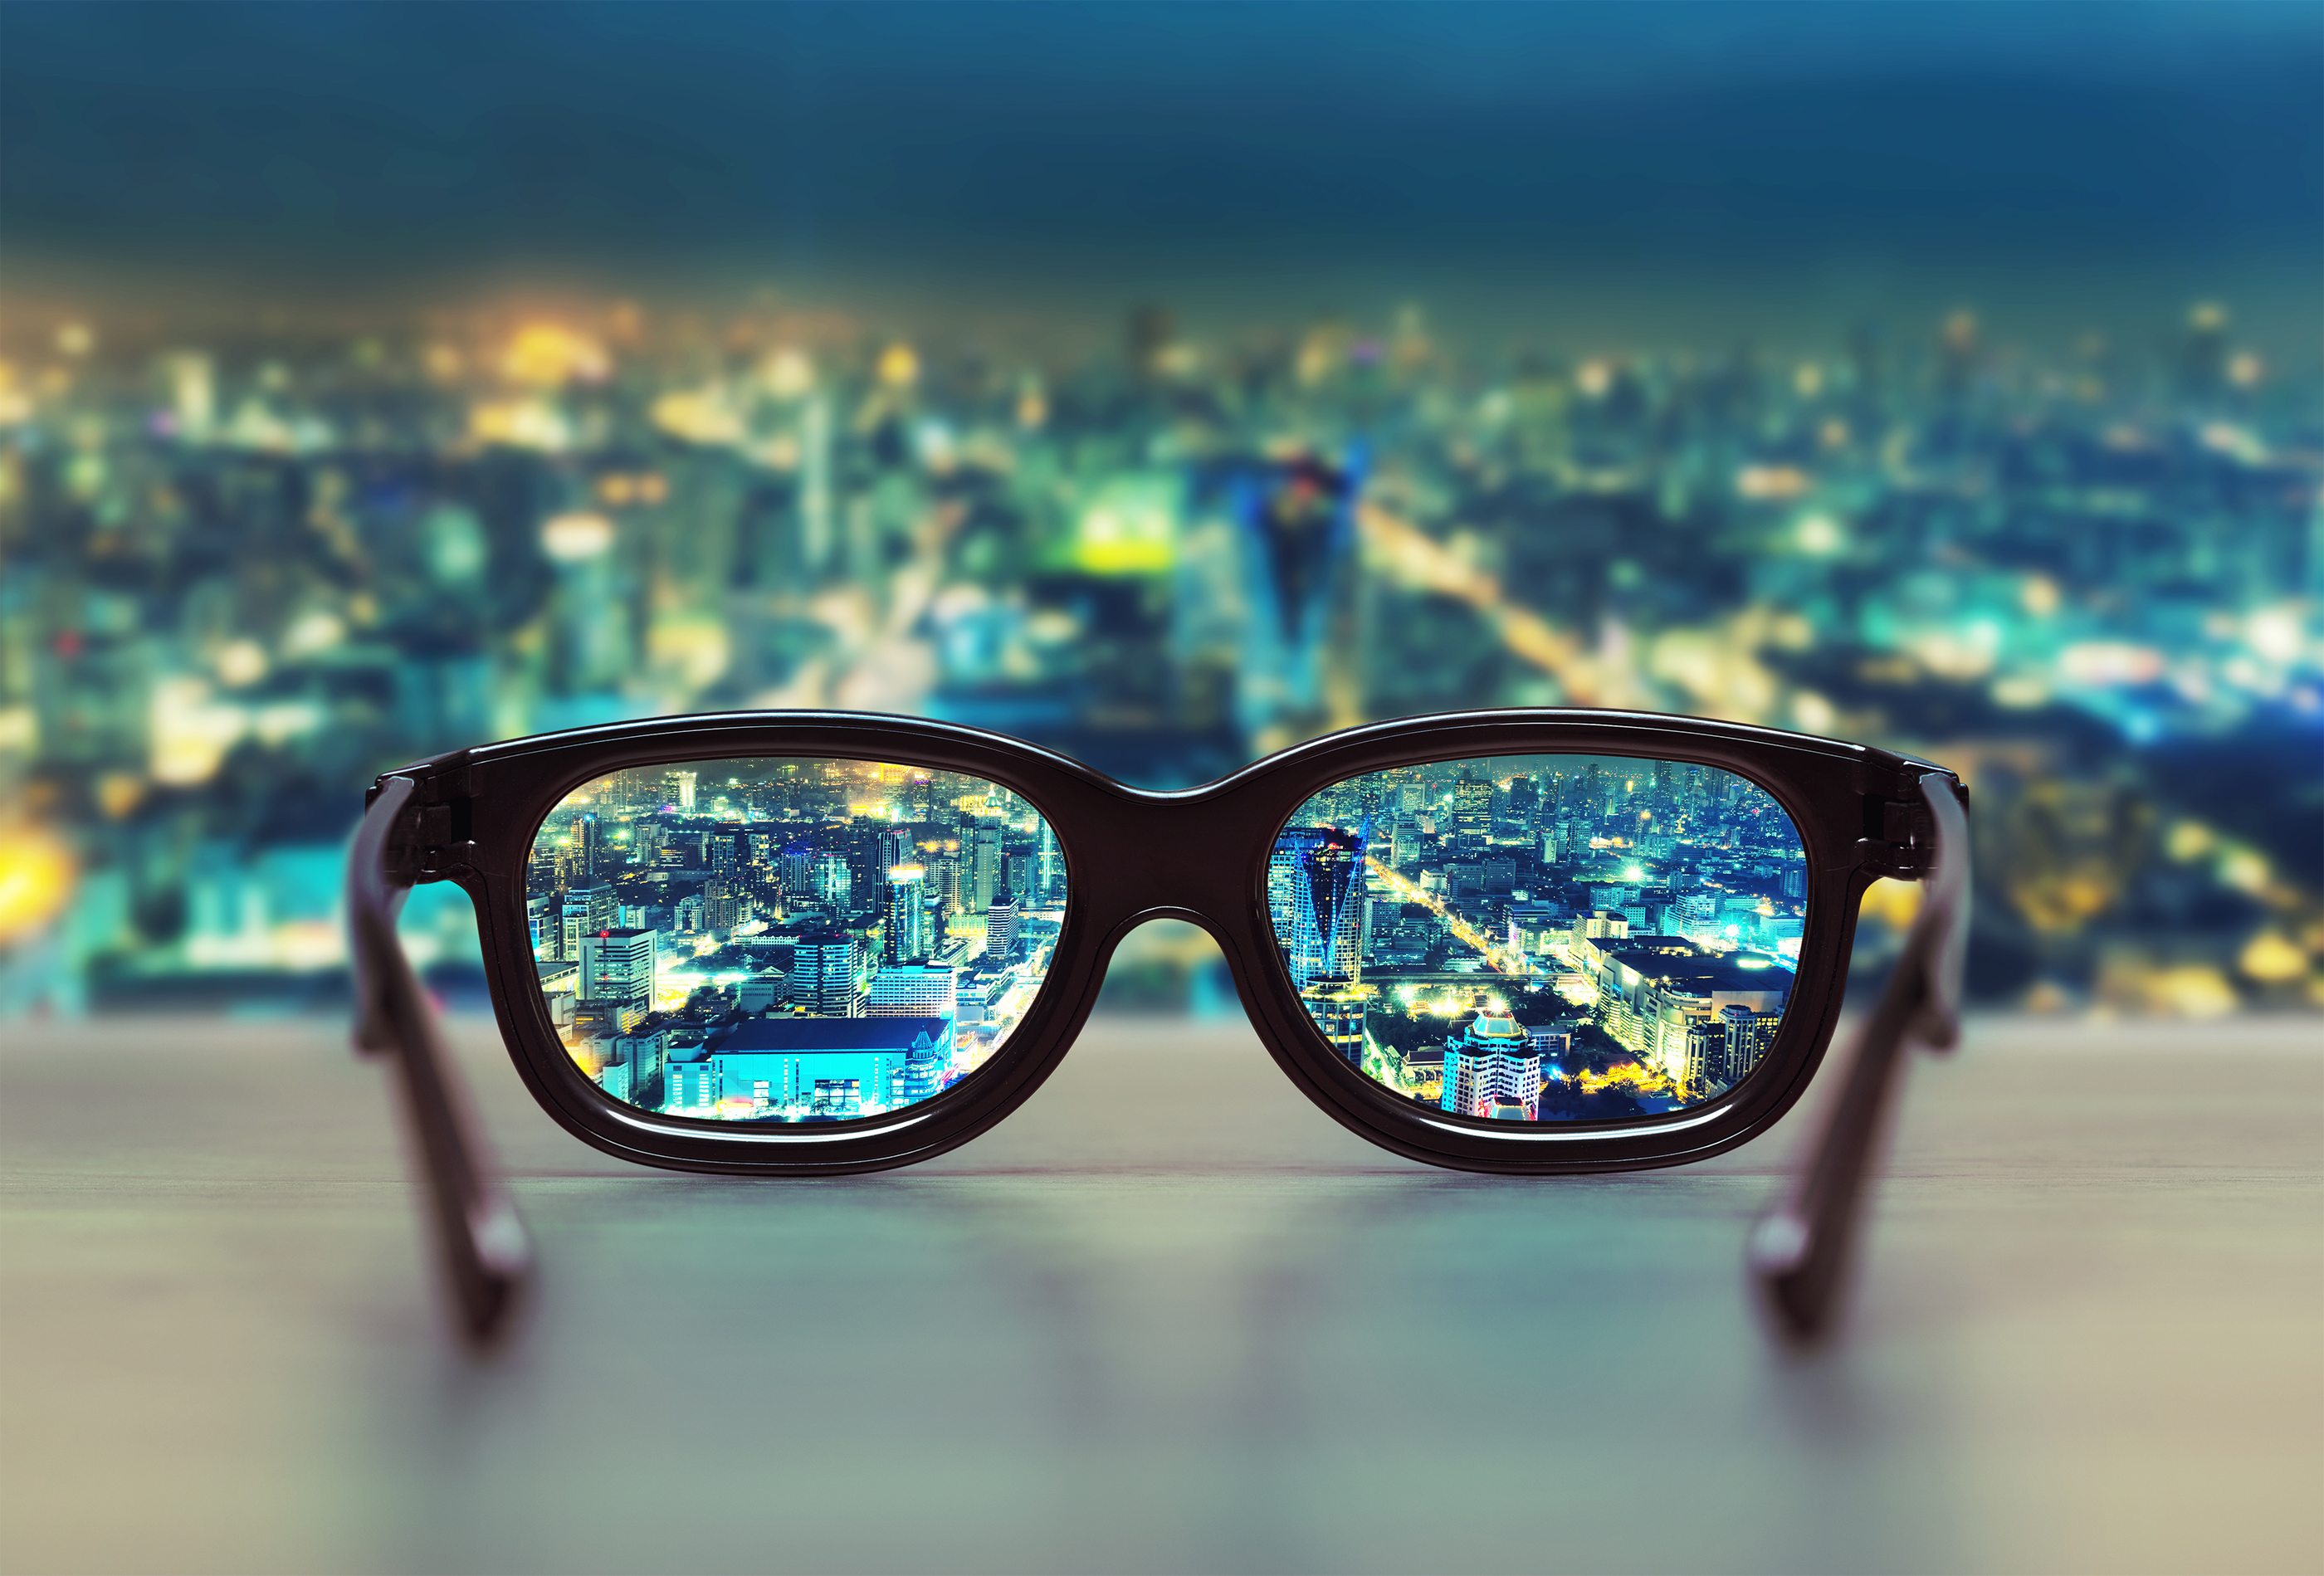 2020 Vision – See Your Career Clearly in the New Year